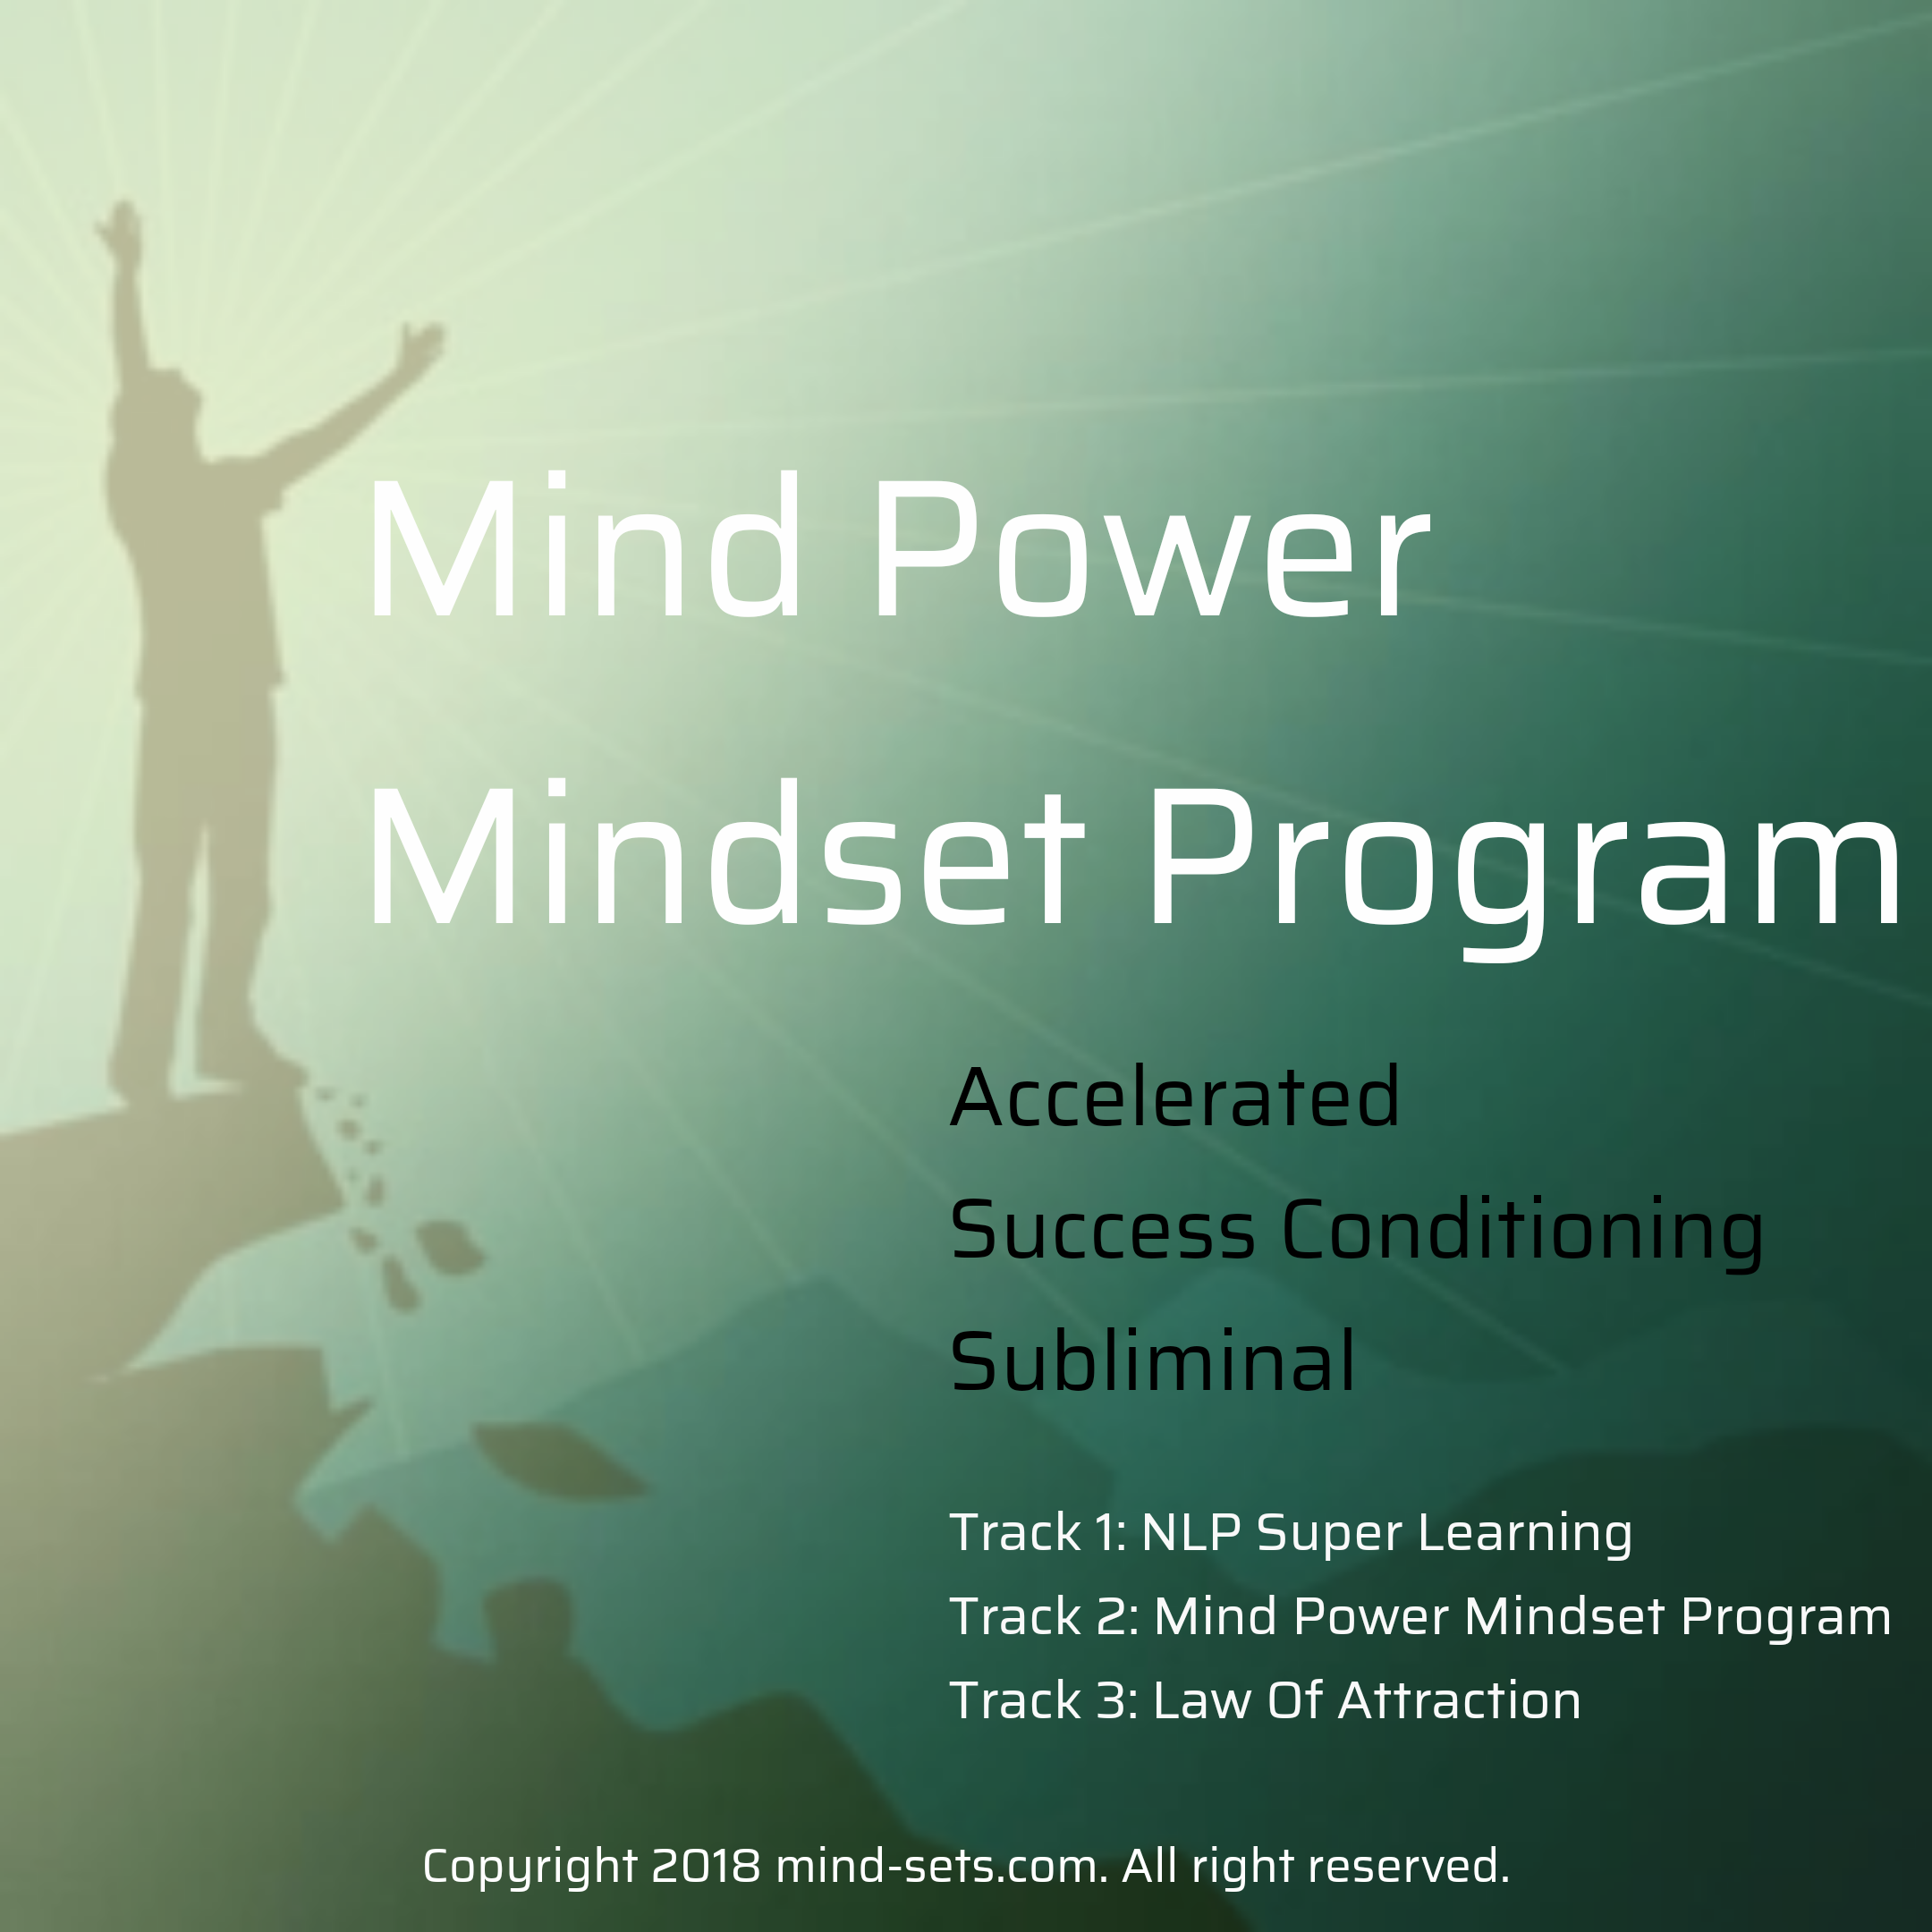 Mind Power Mindset Program